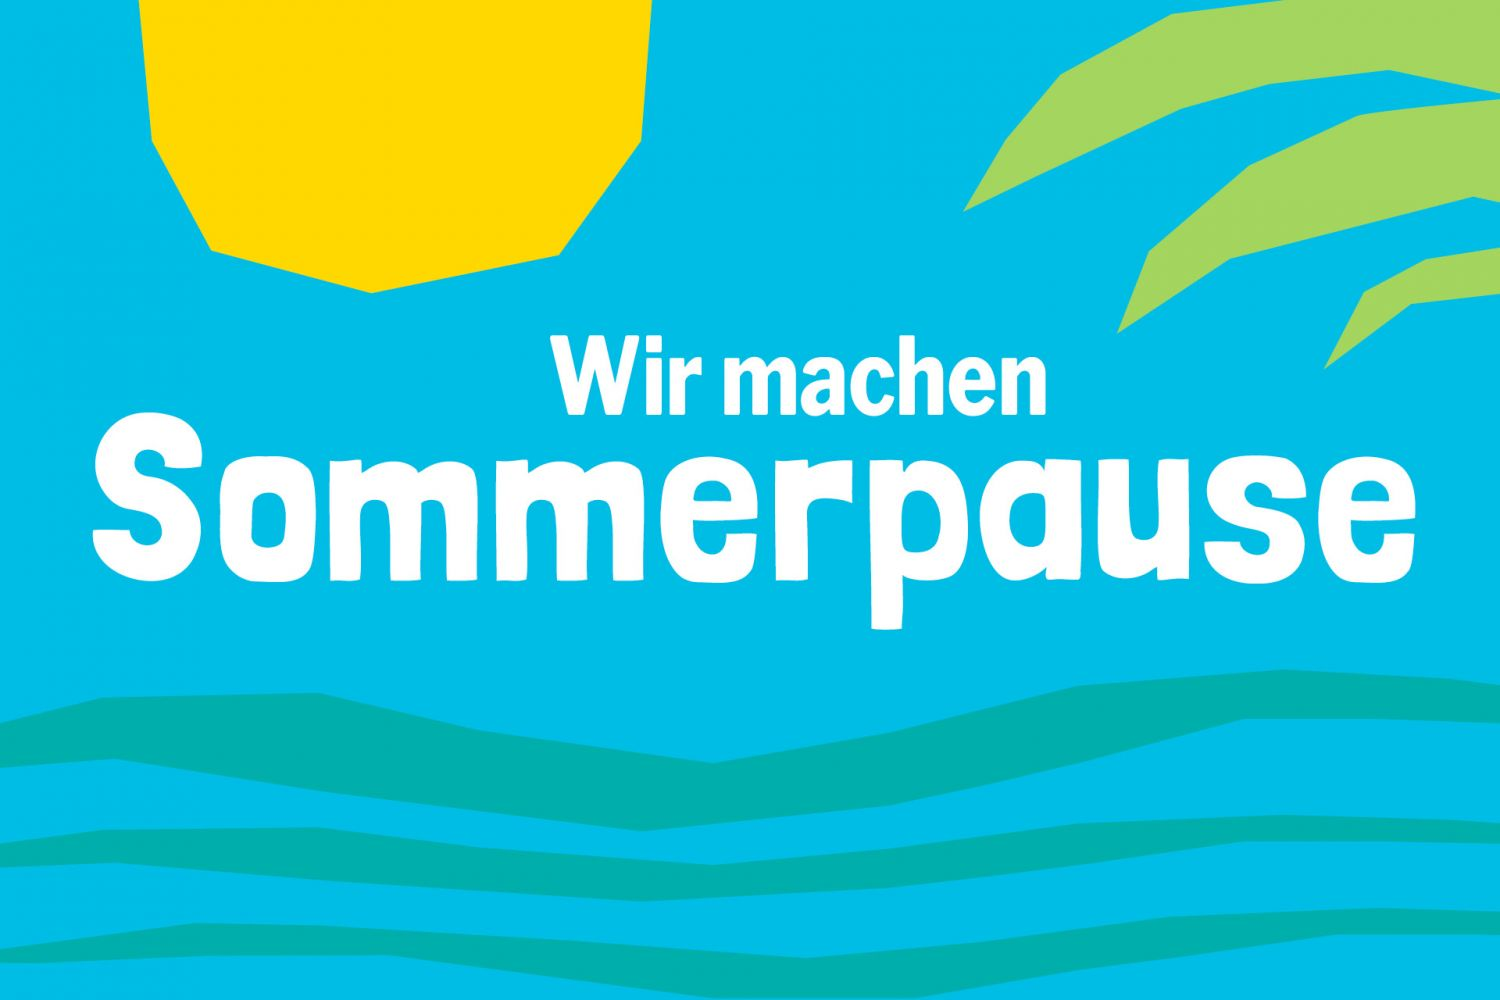 SOMMERPAUSE (Montag, 31.08.2020)